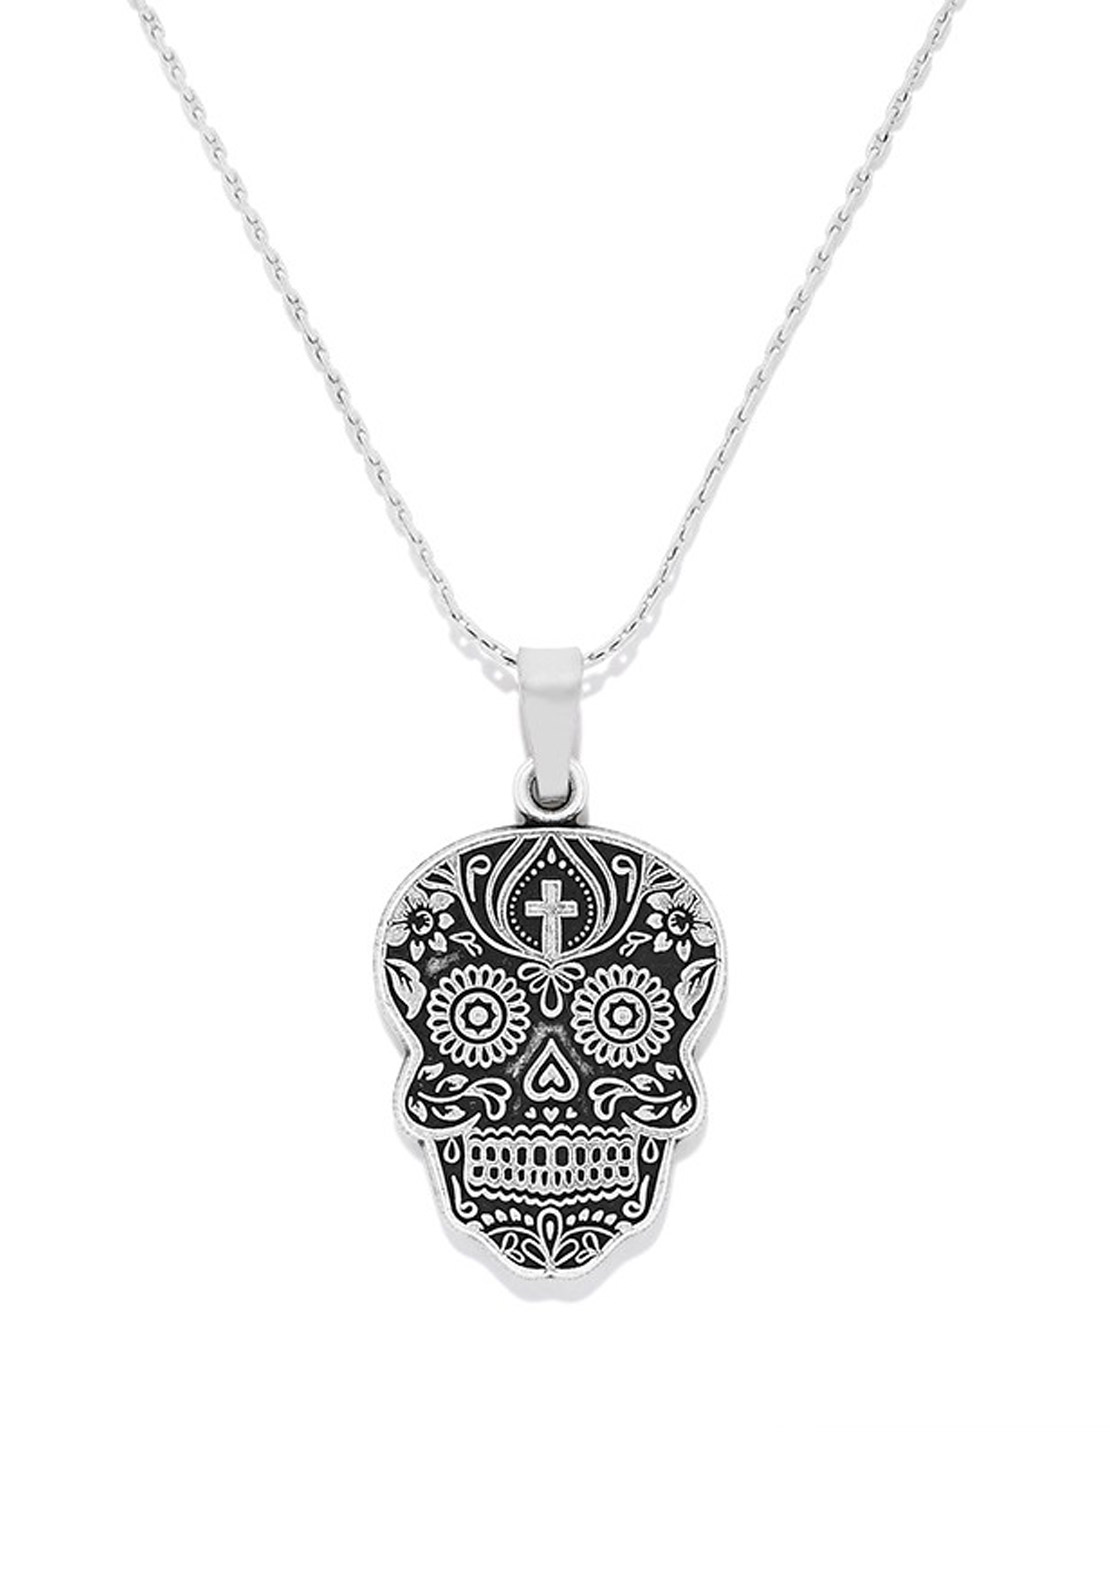 Alex and Ani Calavera Necklace, Silver